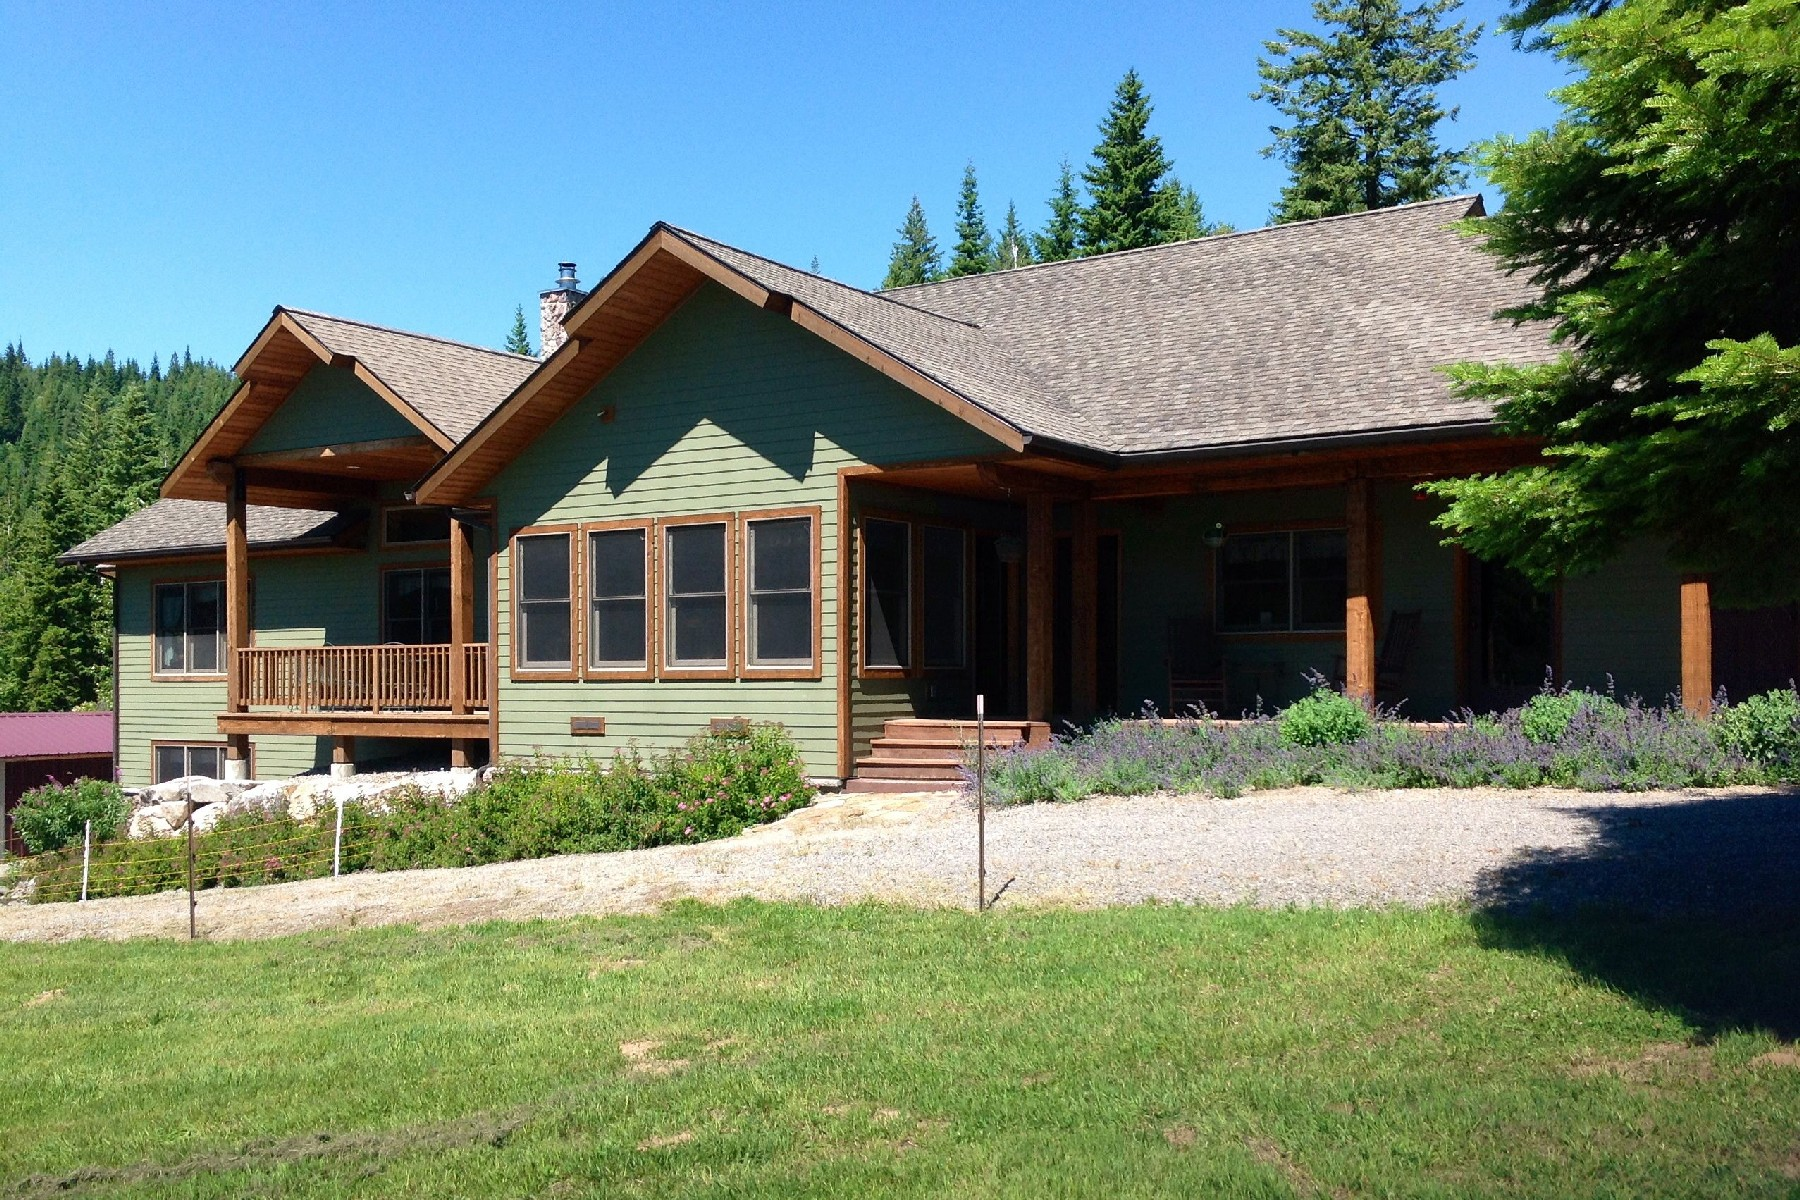 Single Family Home for Sale at Trout Creek Ranch Road 0 Trout Creek Ranch Road Sandpoint, Idaho 83864 United States